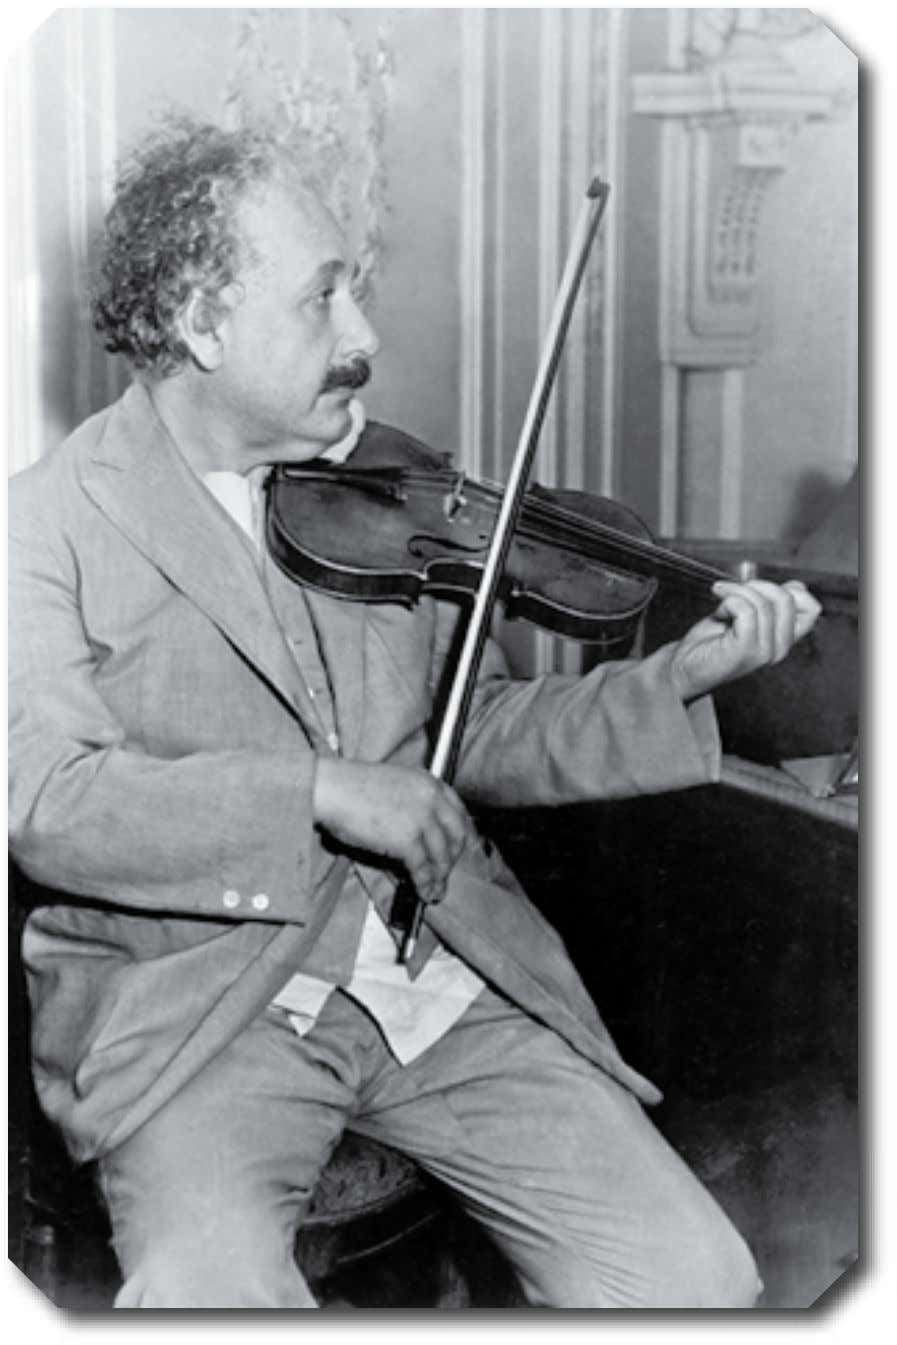 Albert Einstein Einstein learned to play the violin as a child. He enjoyed this activity throughout